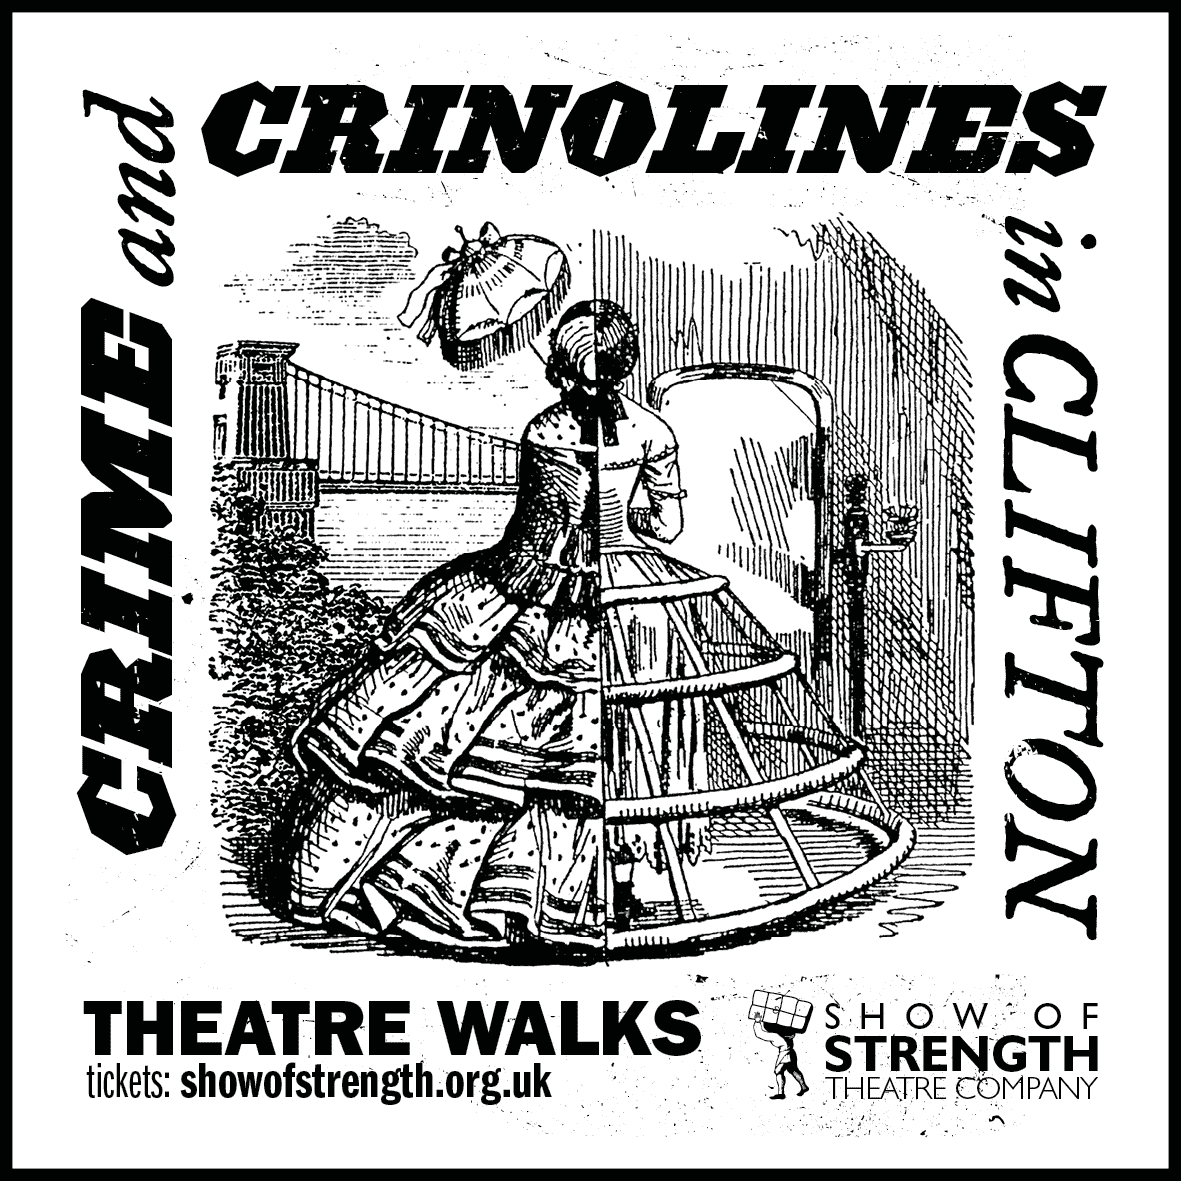 Crime and Crinolins in Clifton